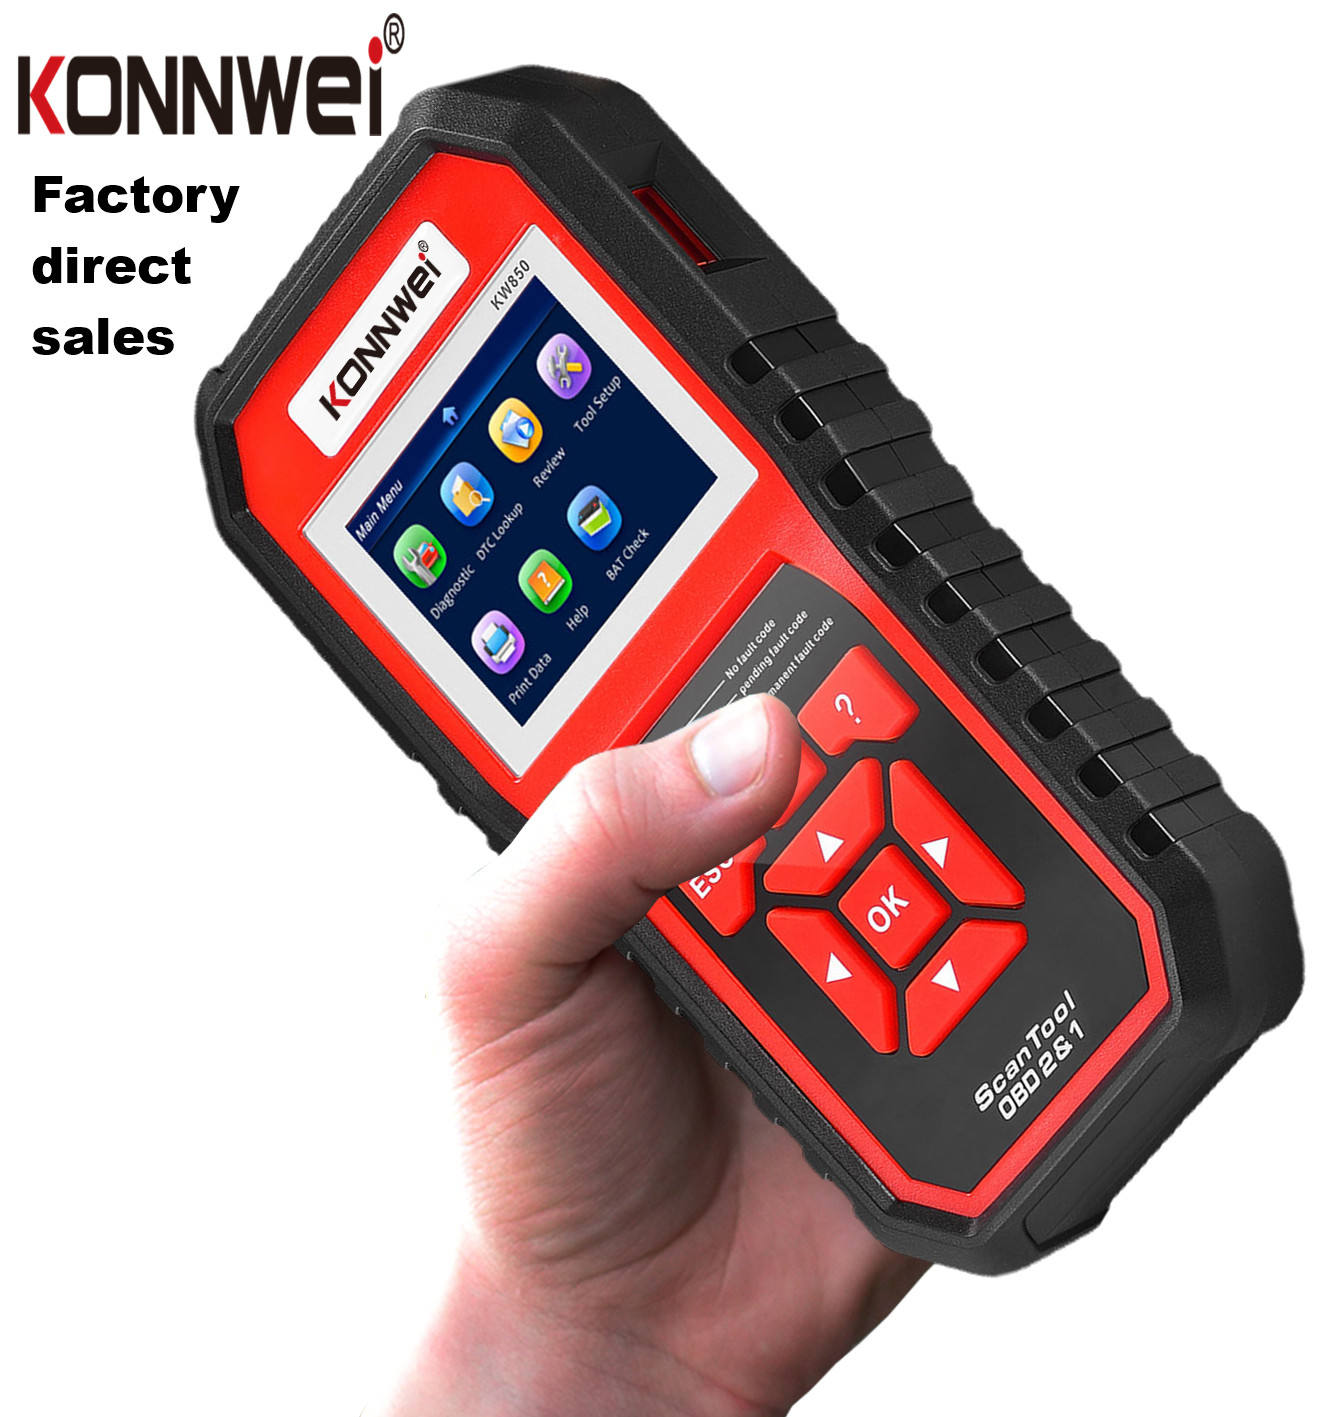 KW850 konnwei Factory diagnostic tools 16pin Handheld OBD2 Auto Car Diagnostic Scanner for all 12V car obd2 scanner